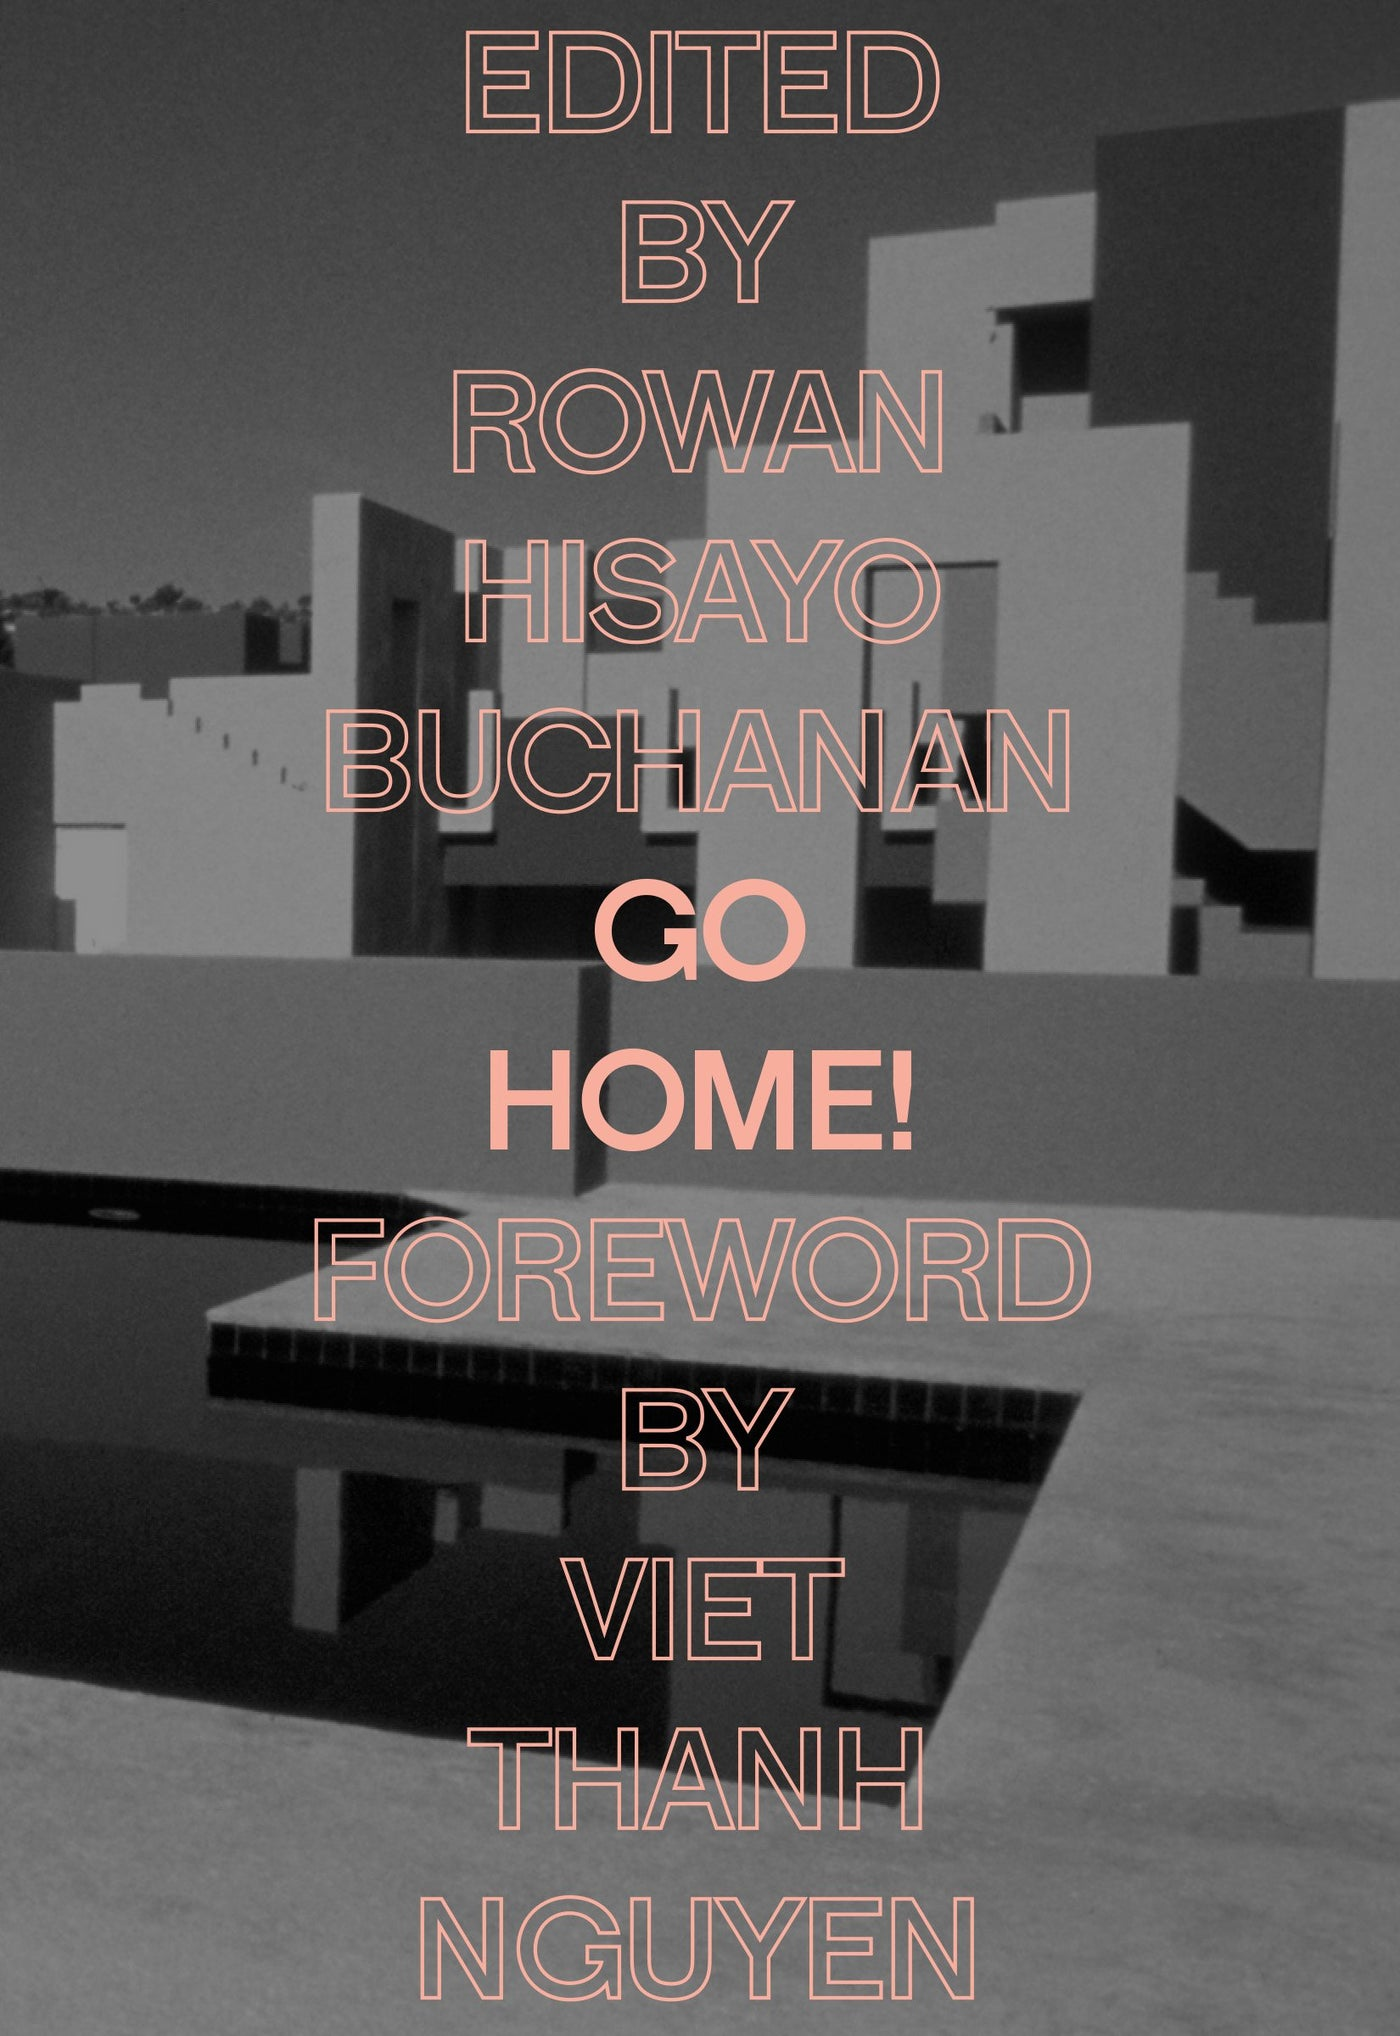 Go Home! by Rowan Hisayo Buchanan